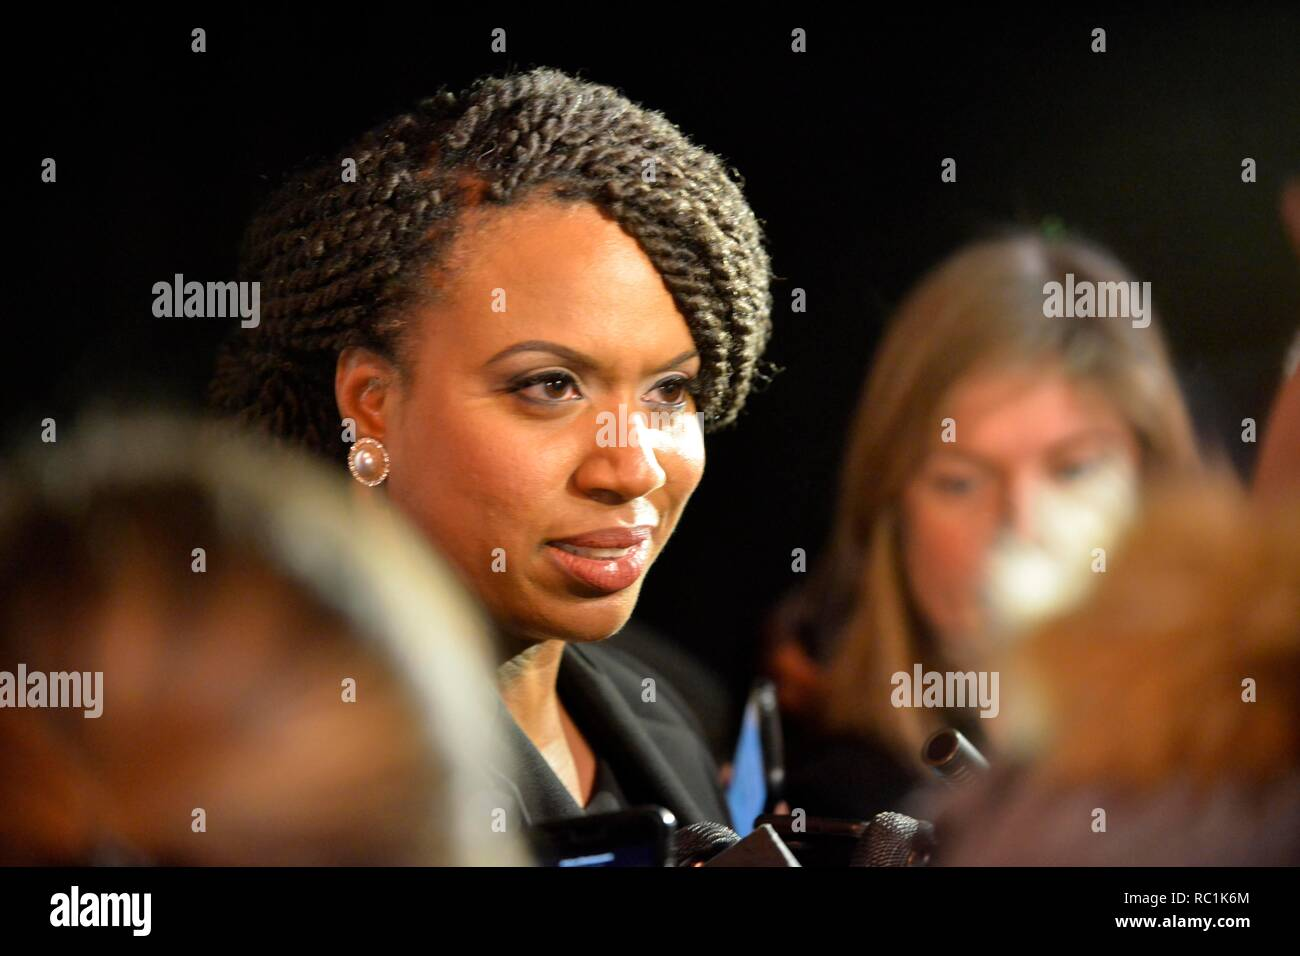 Boston, Massachusetts, USA  12th Jan, 2019  AYANNA PRESSLEY